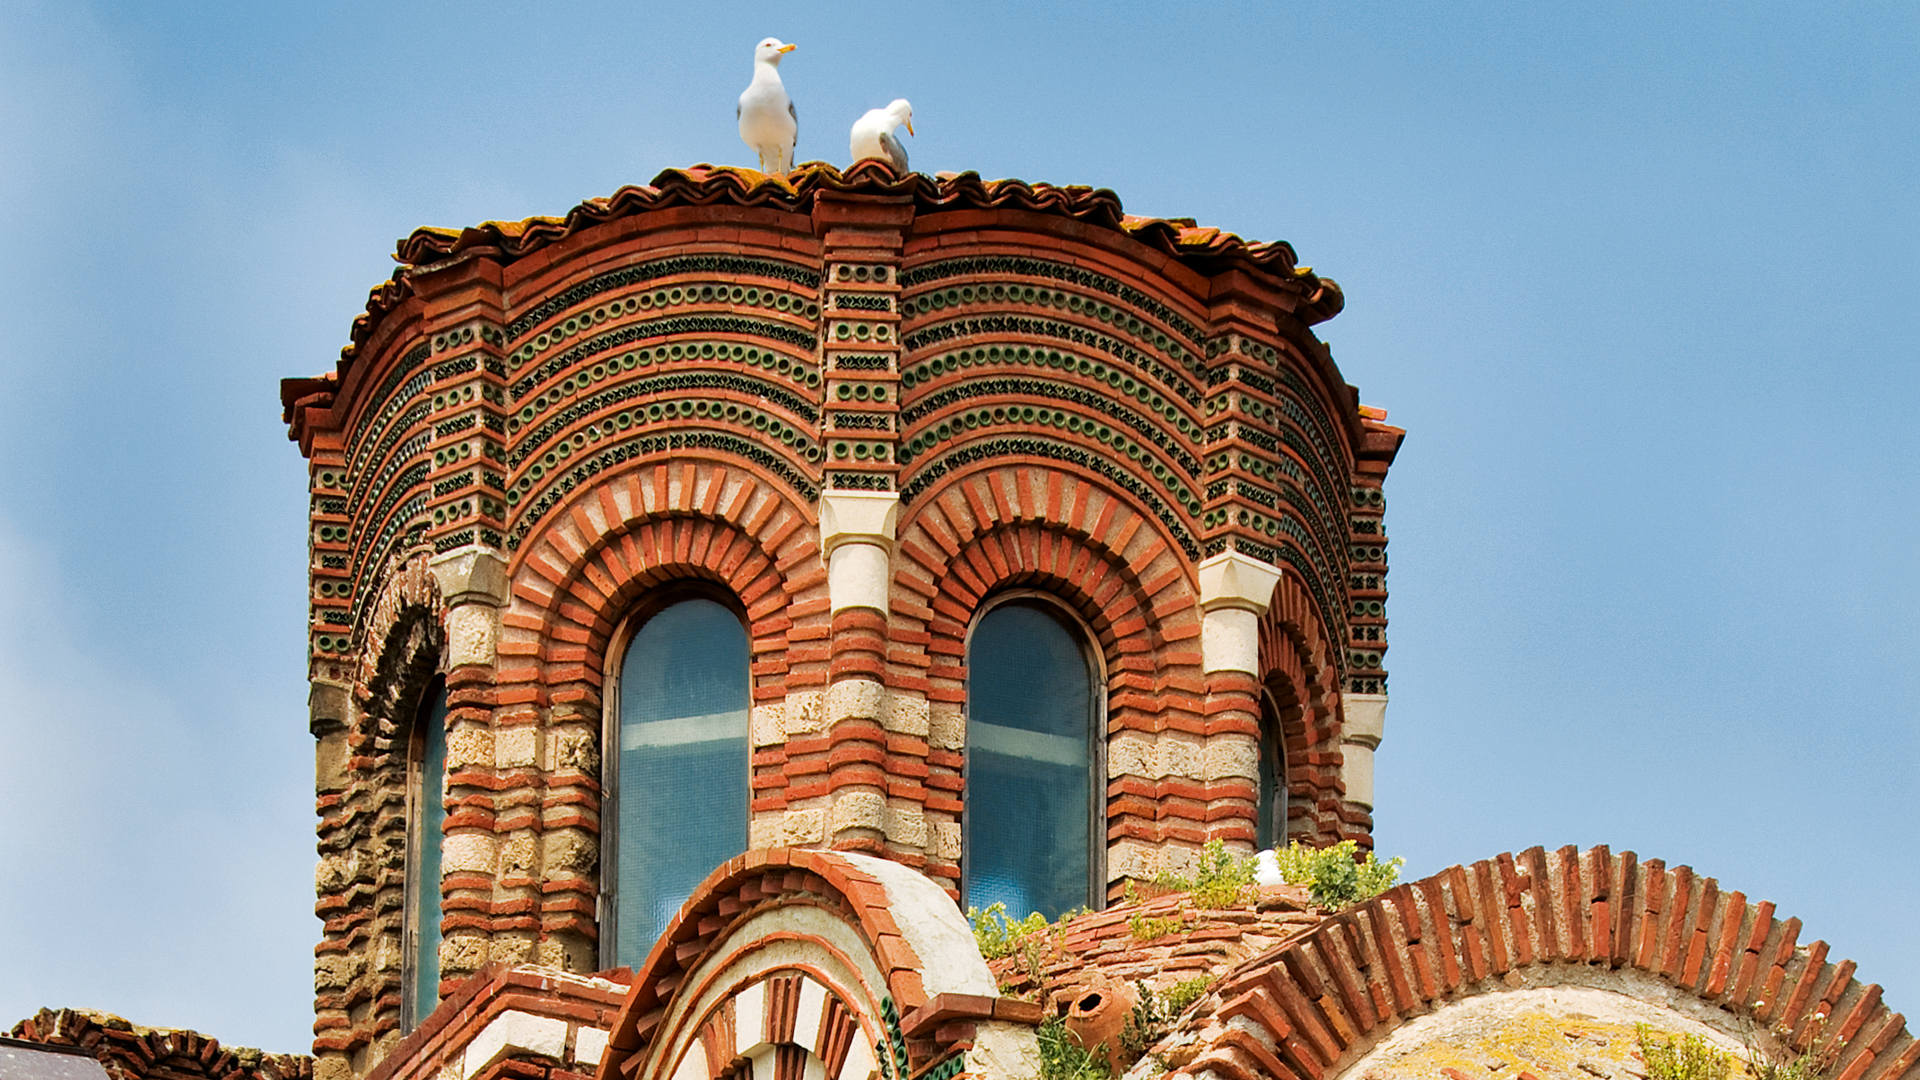 The 13th-14th century Christ Almighty church is the best example for the Constantinople-inspired decorative style in Nesebar